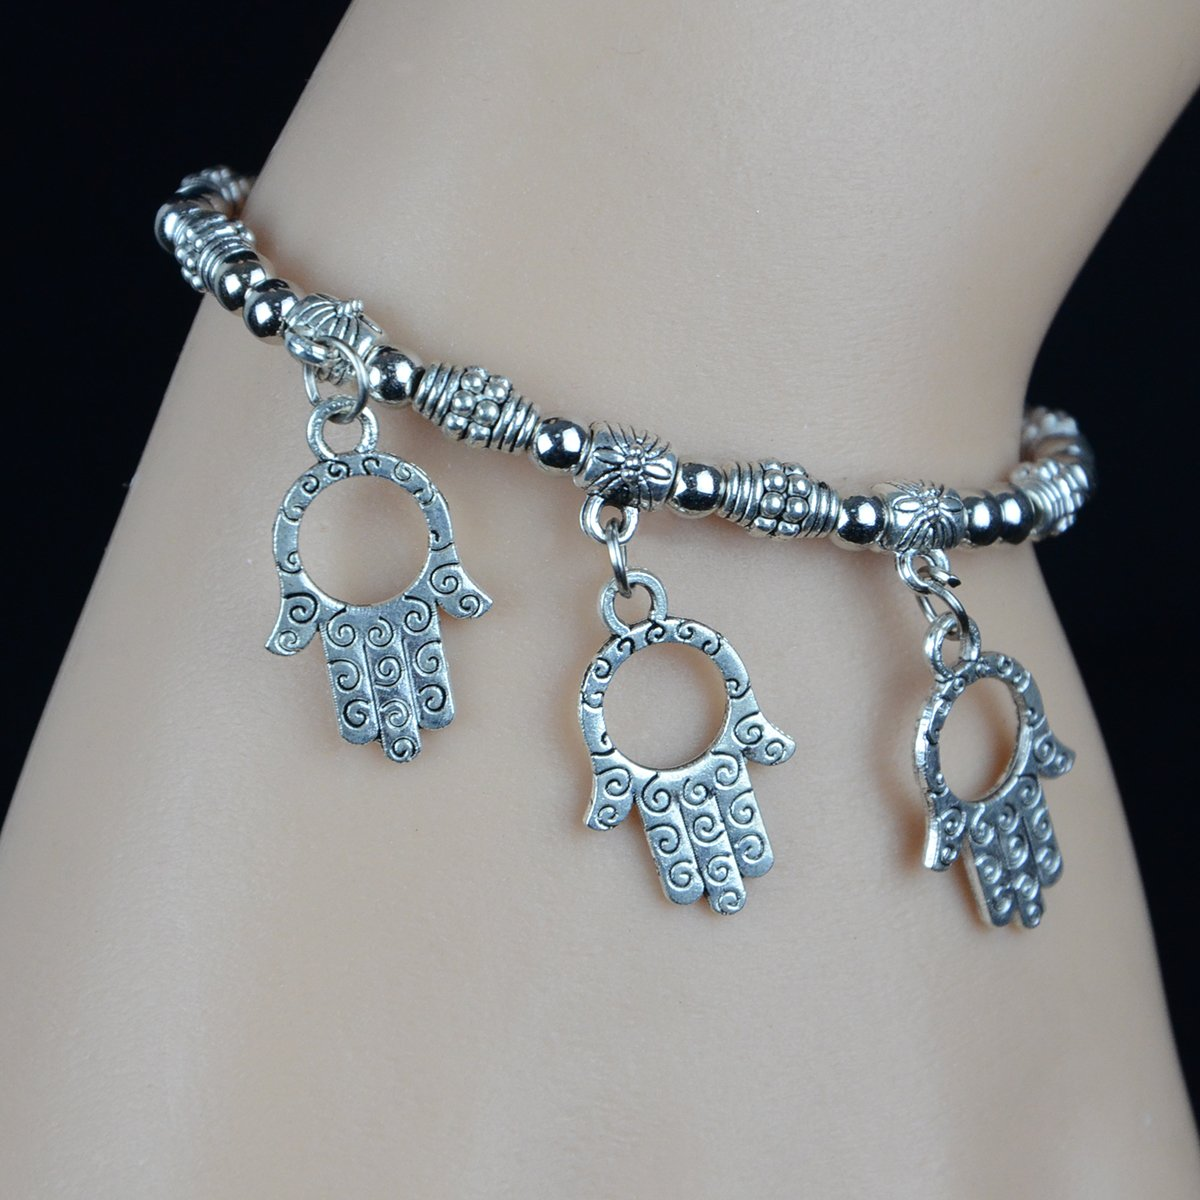 SUBESO Neutral Retro Style Antique Silver Bracelet With Beads /& Palms